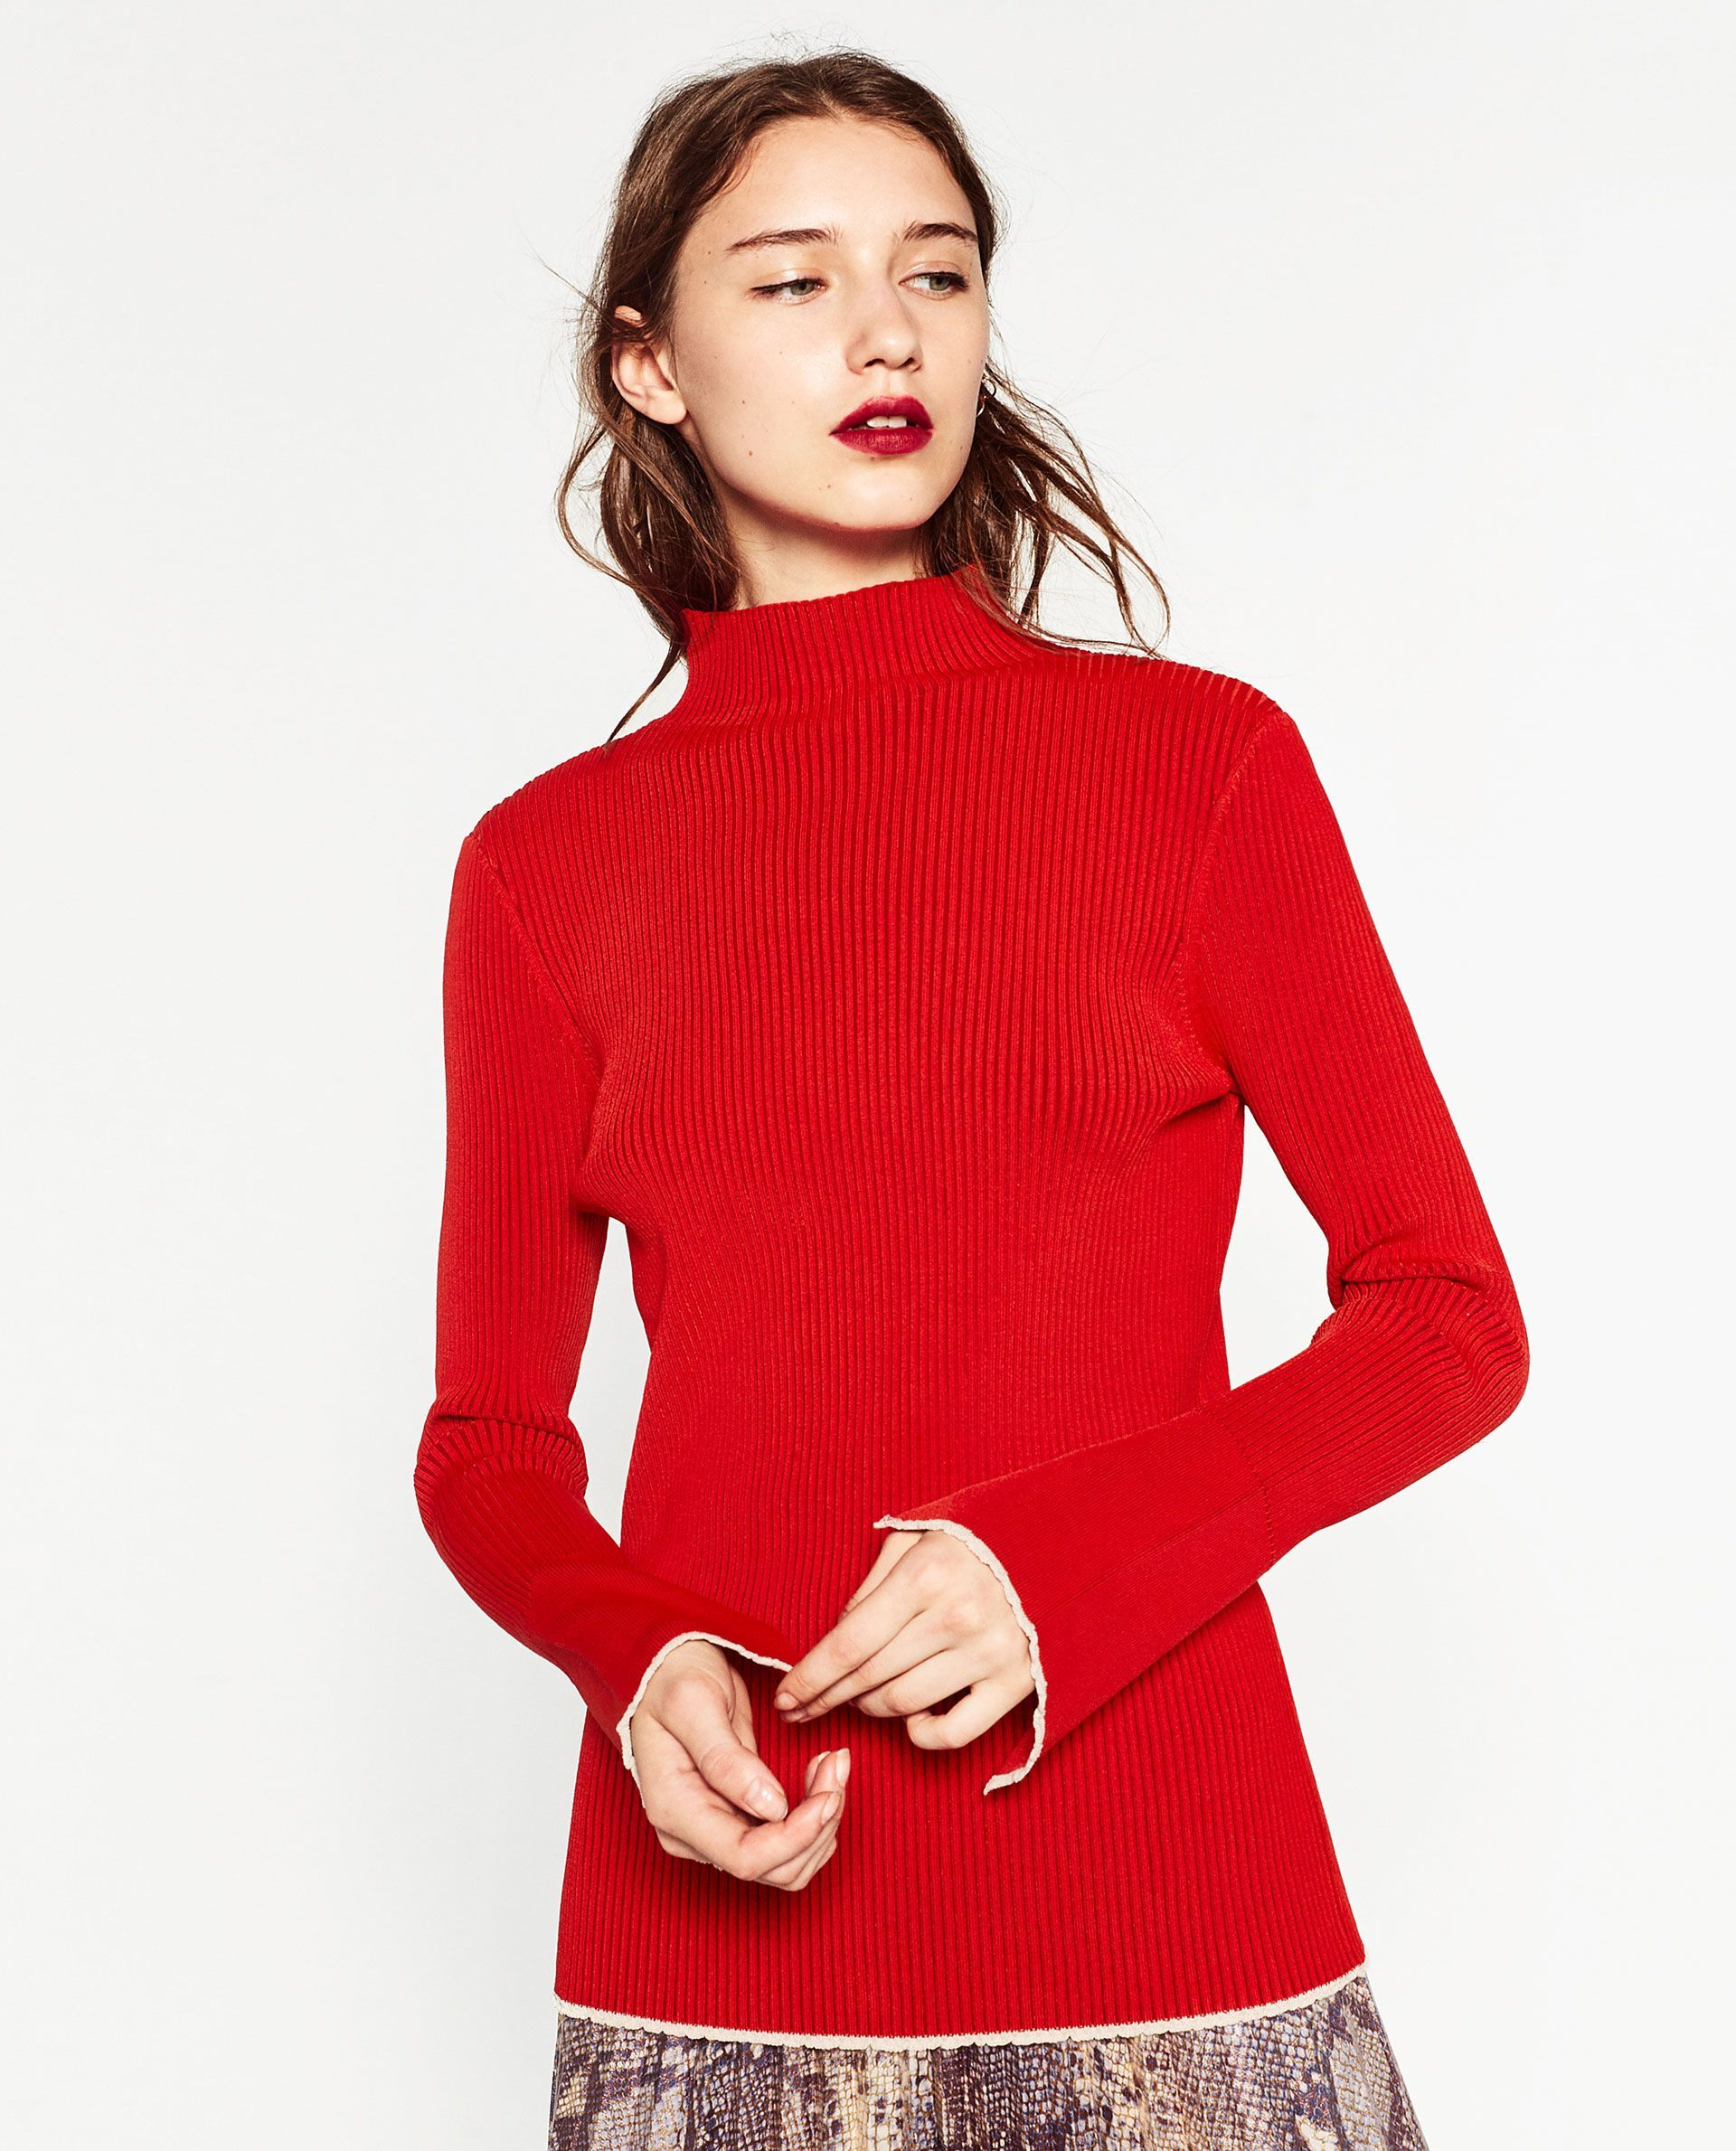 Zara's New Arrivals Will Get You Excited For Fall | Red sweaters ...